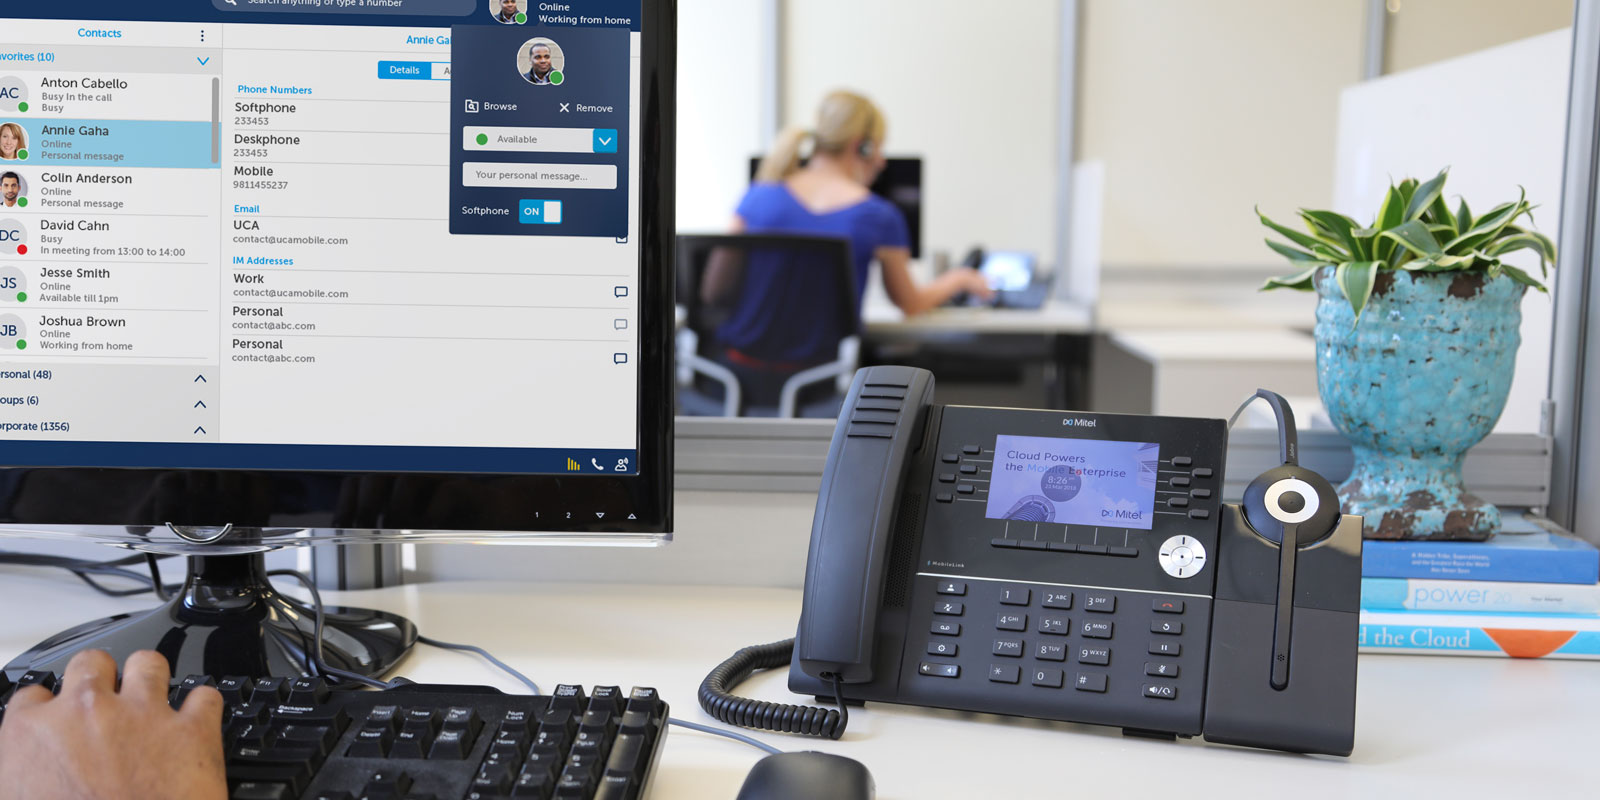 Call management system for small businesses